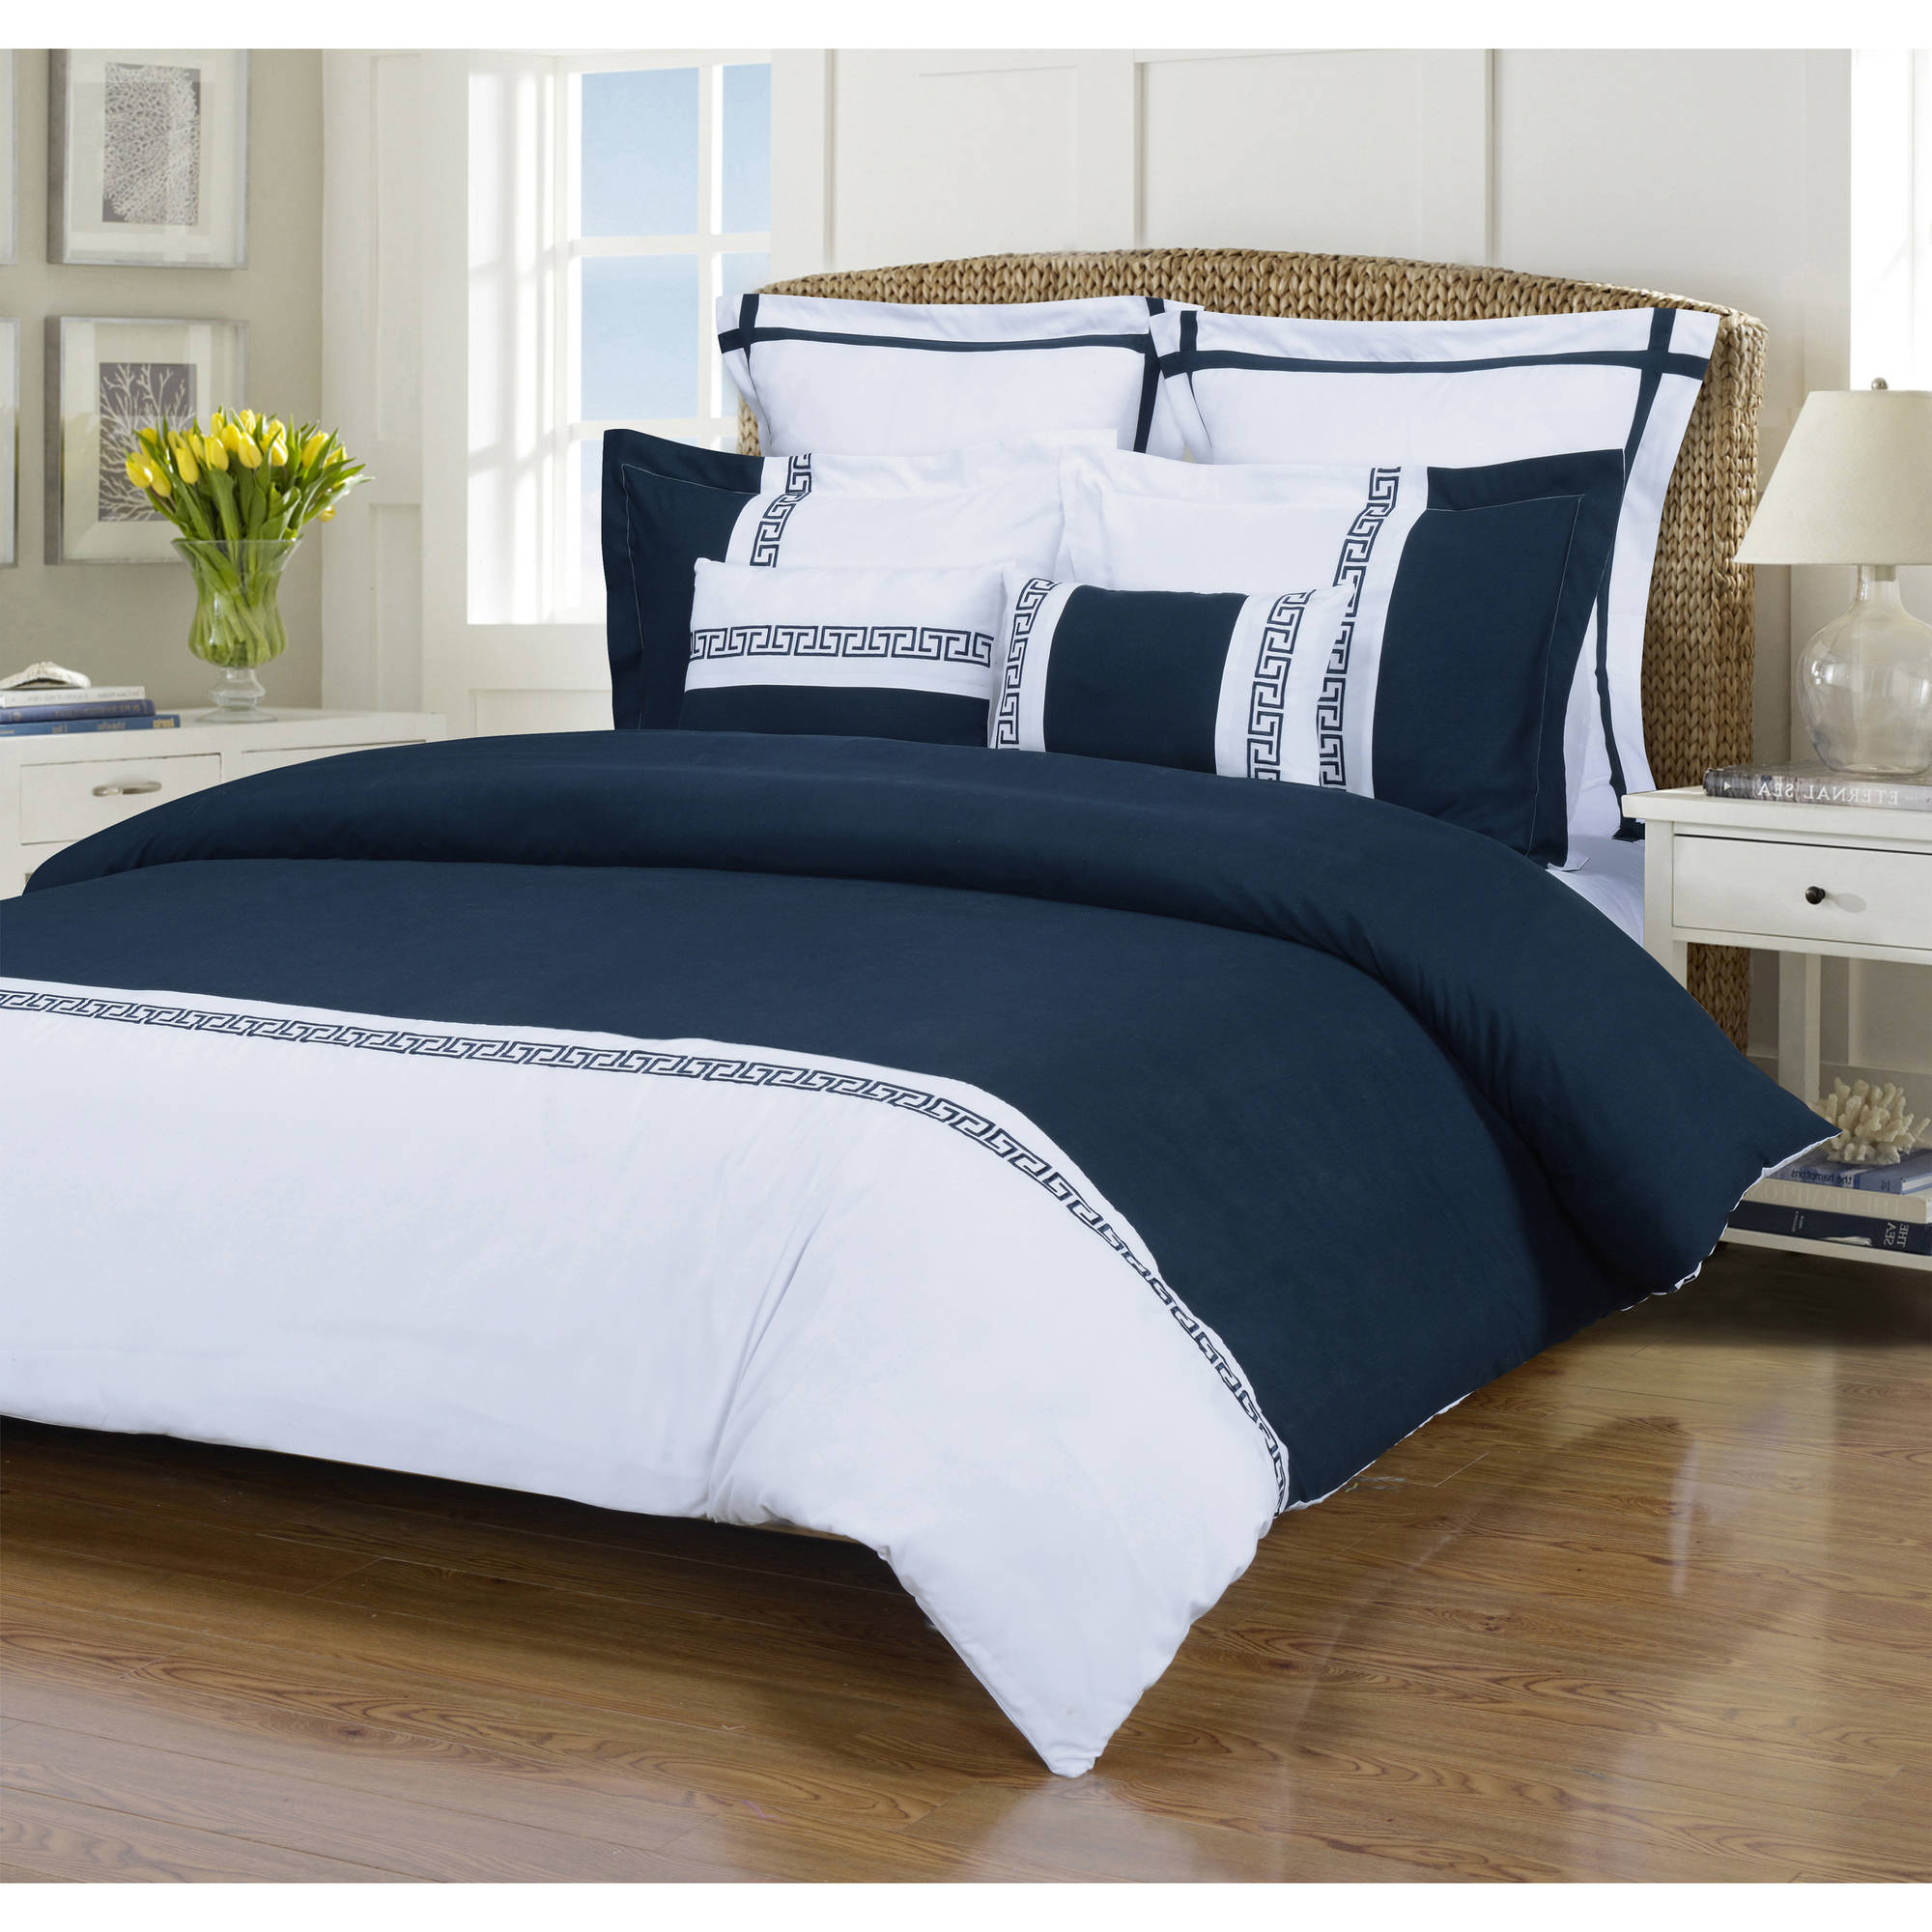 Superior Emma Brushed Microfiber Wrinkle Resistant 7-Piece Duvet Cover Set